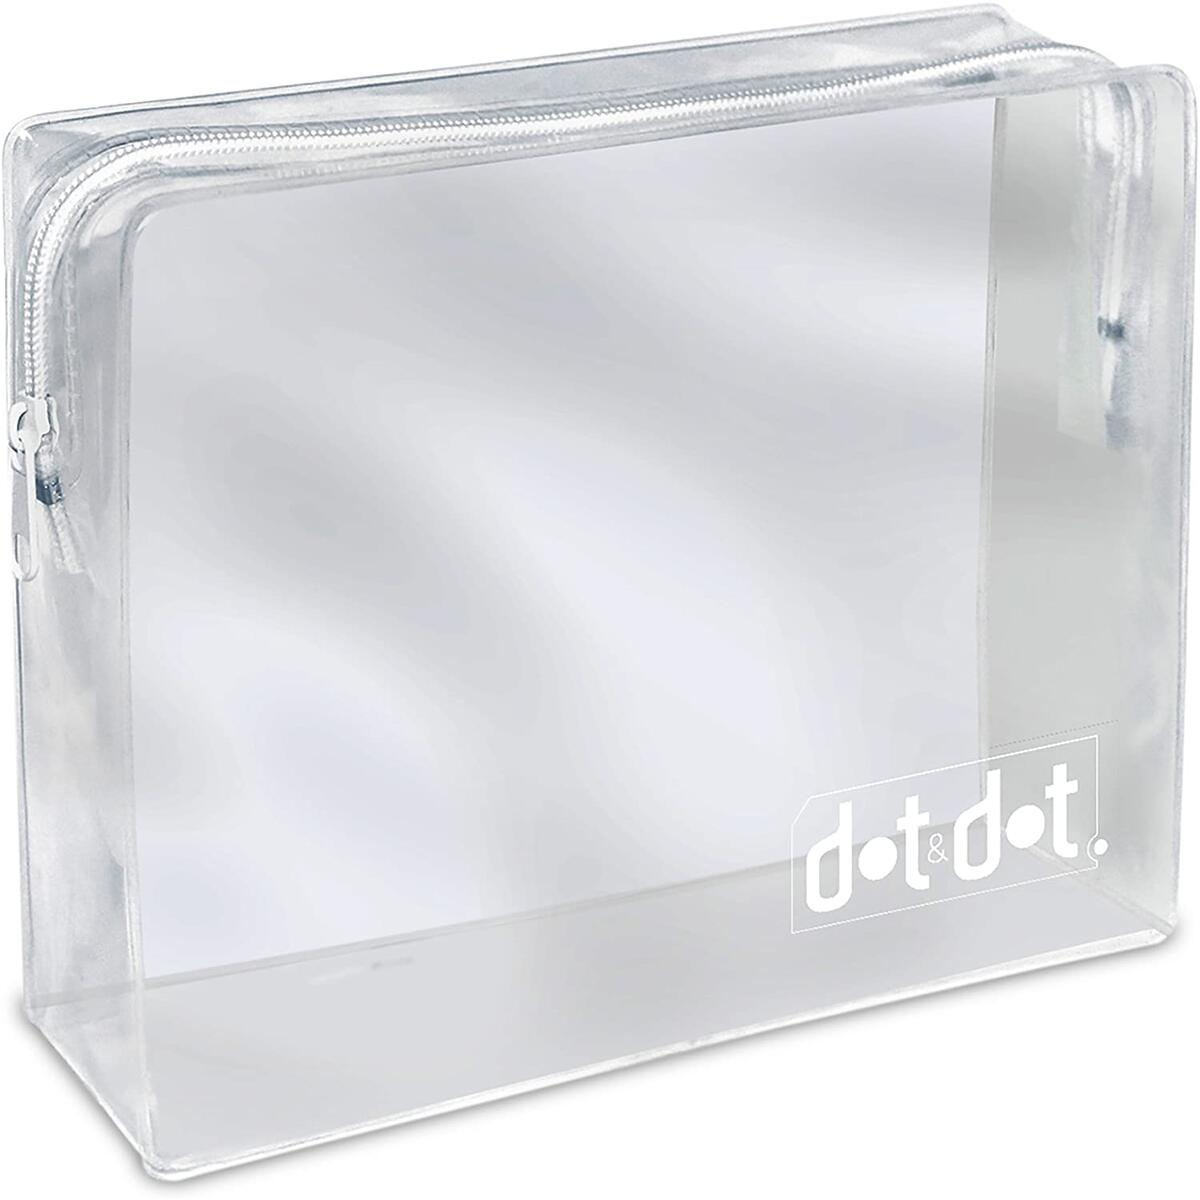 2 TSA Approved Toiletry Bags - 311 Clear Quart Size Bag for Airline Travel